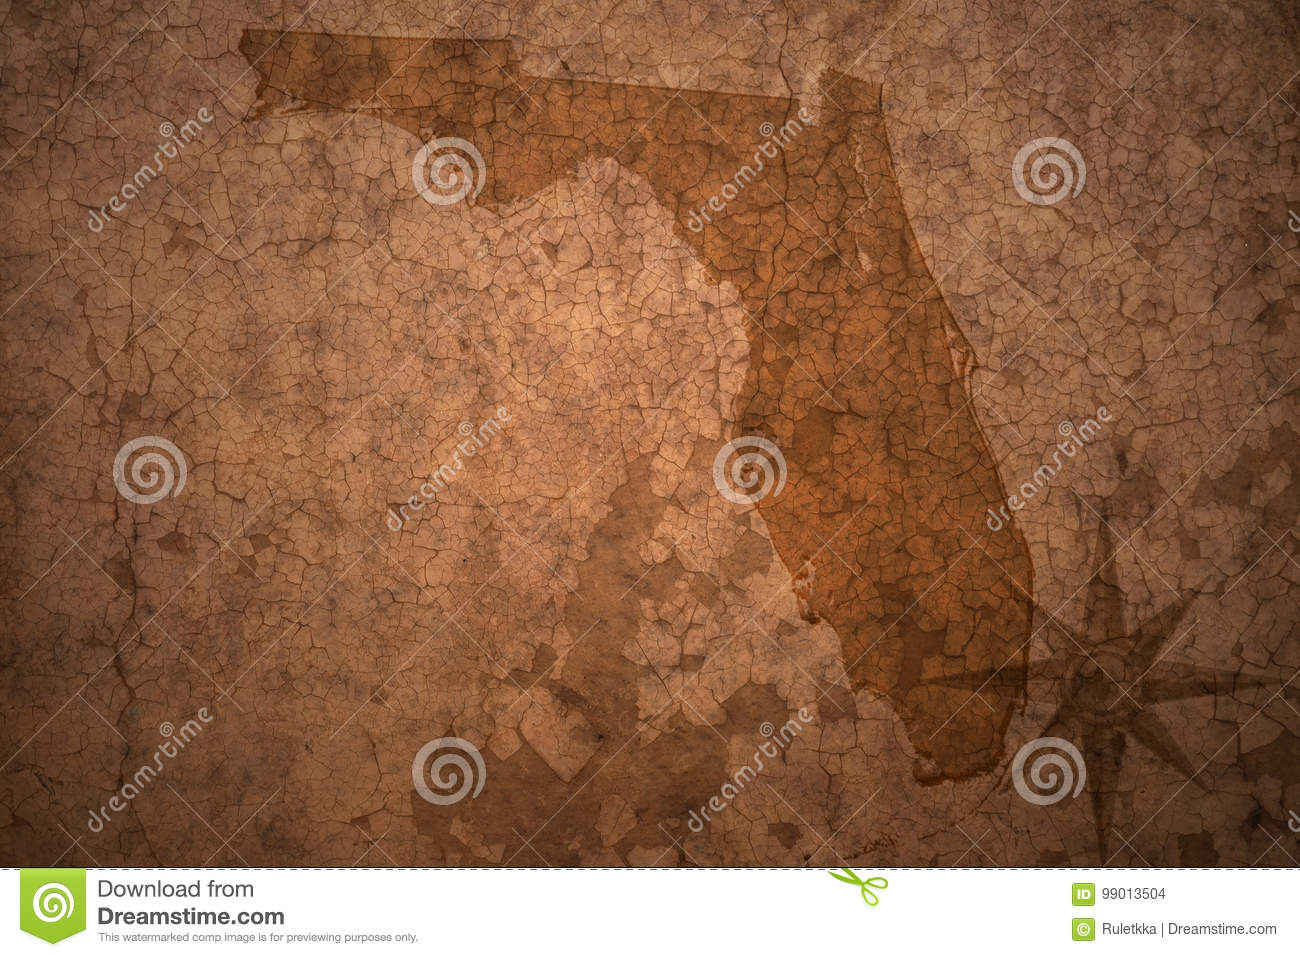 Old Florida Maps.Florida State Map On A Old Vintage Paper Background Stock Photo